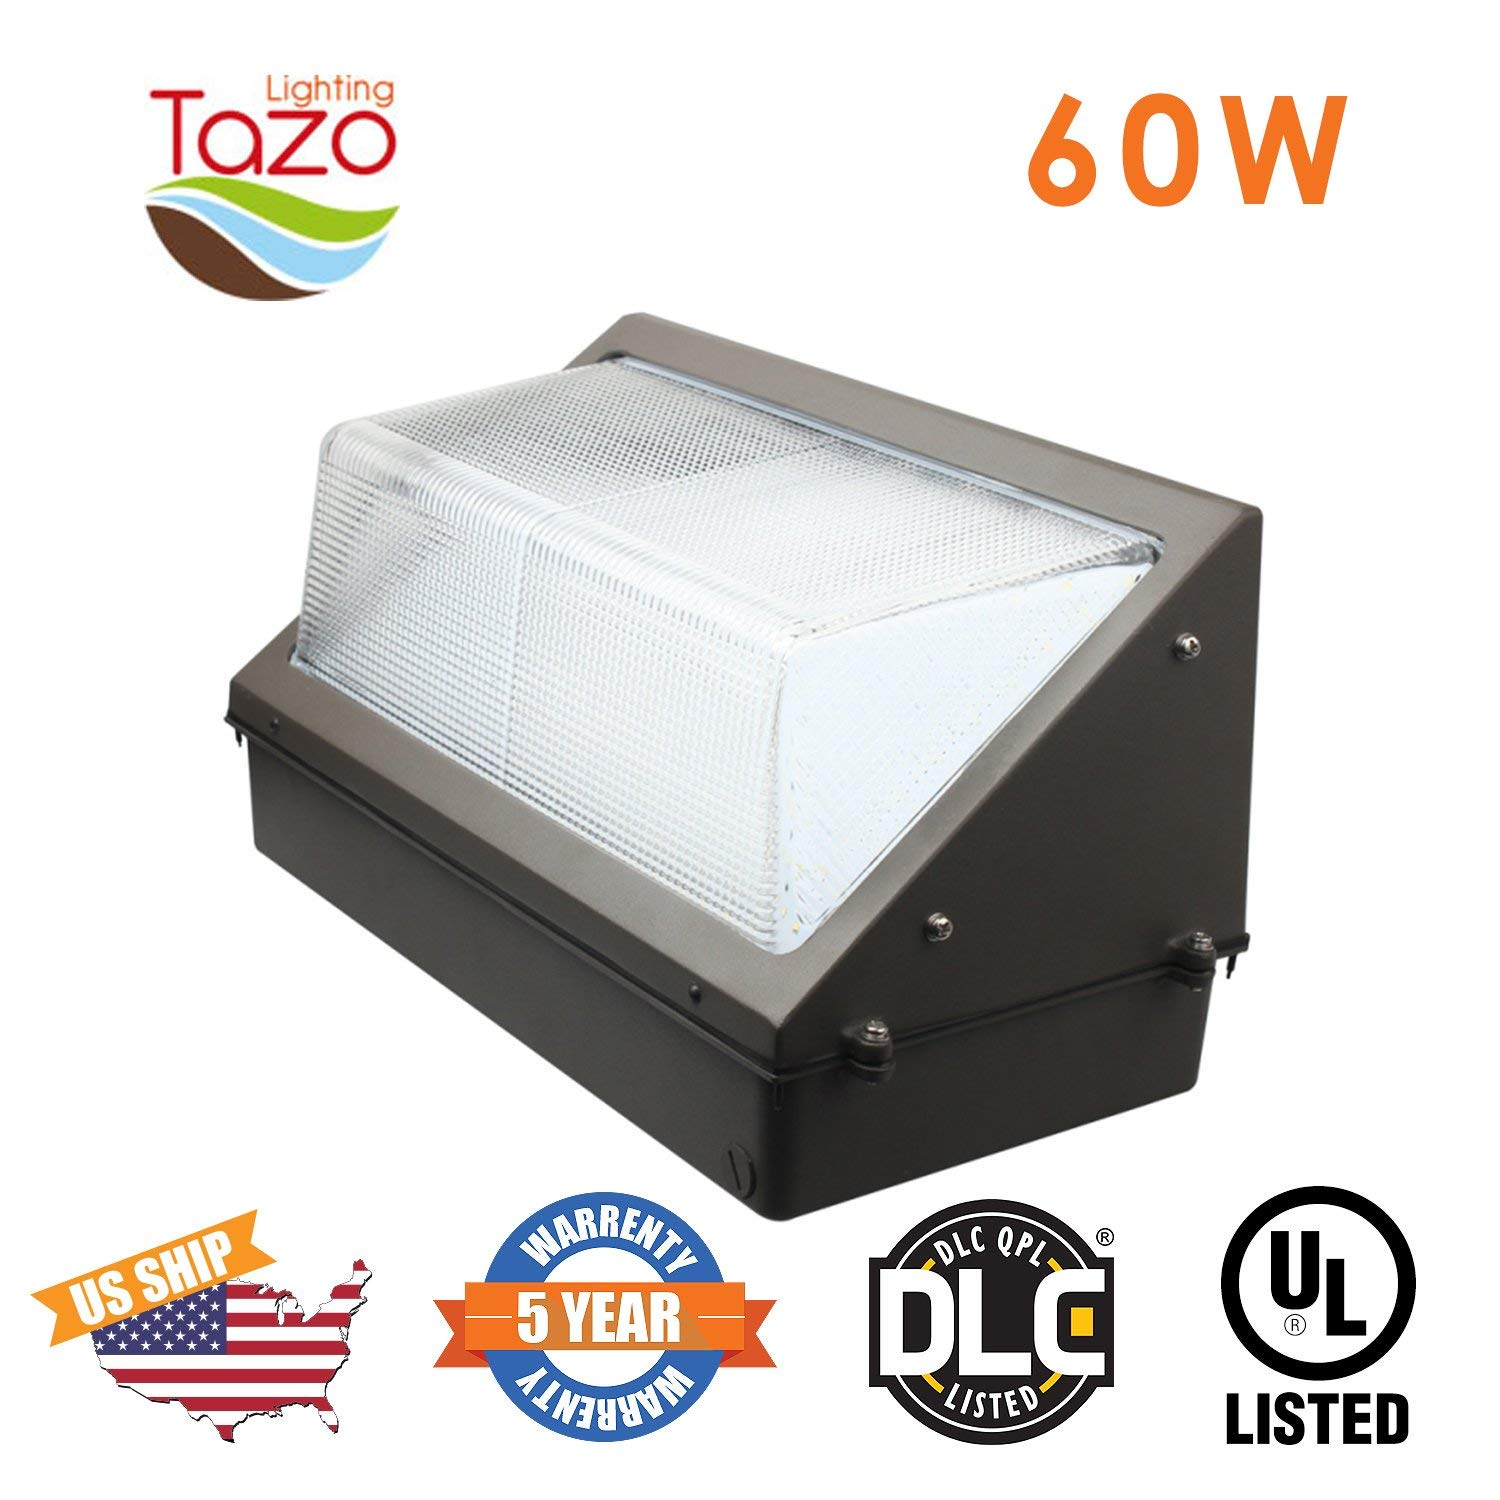 TAZO LIGHTING 60W LED Wall Pack Light, 2700-7000K LED Security Lighting Fixture, 4800-5400 Lumens(200-300W MH/HPS Equivalent), IP65 Outdoor Industrial and Commercial Aare Lighting (UL-Listed)